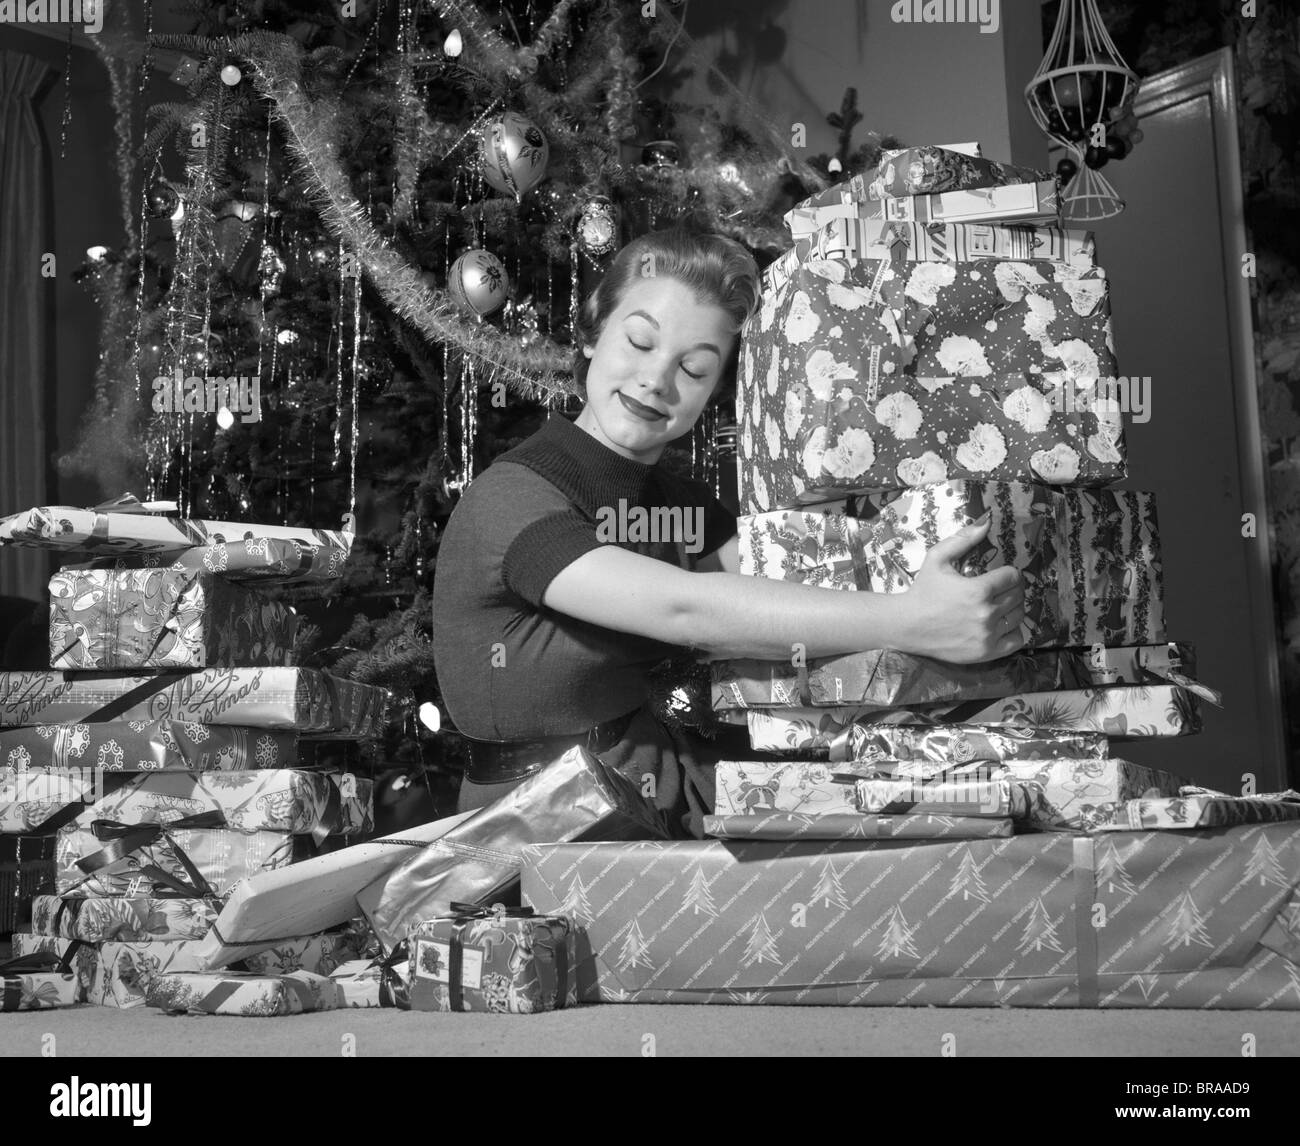 1950s Woman Sitting By Christmas Tree Hugging Pile Of